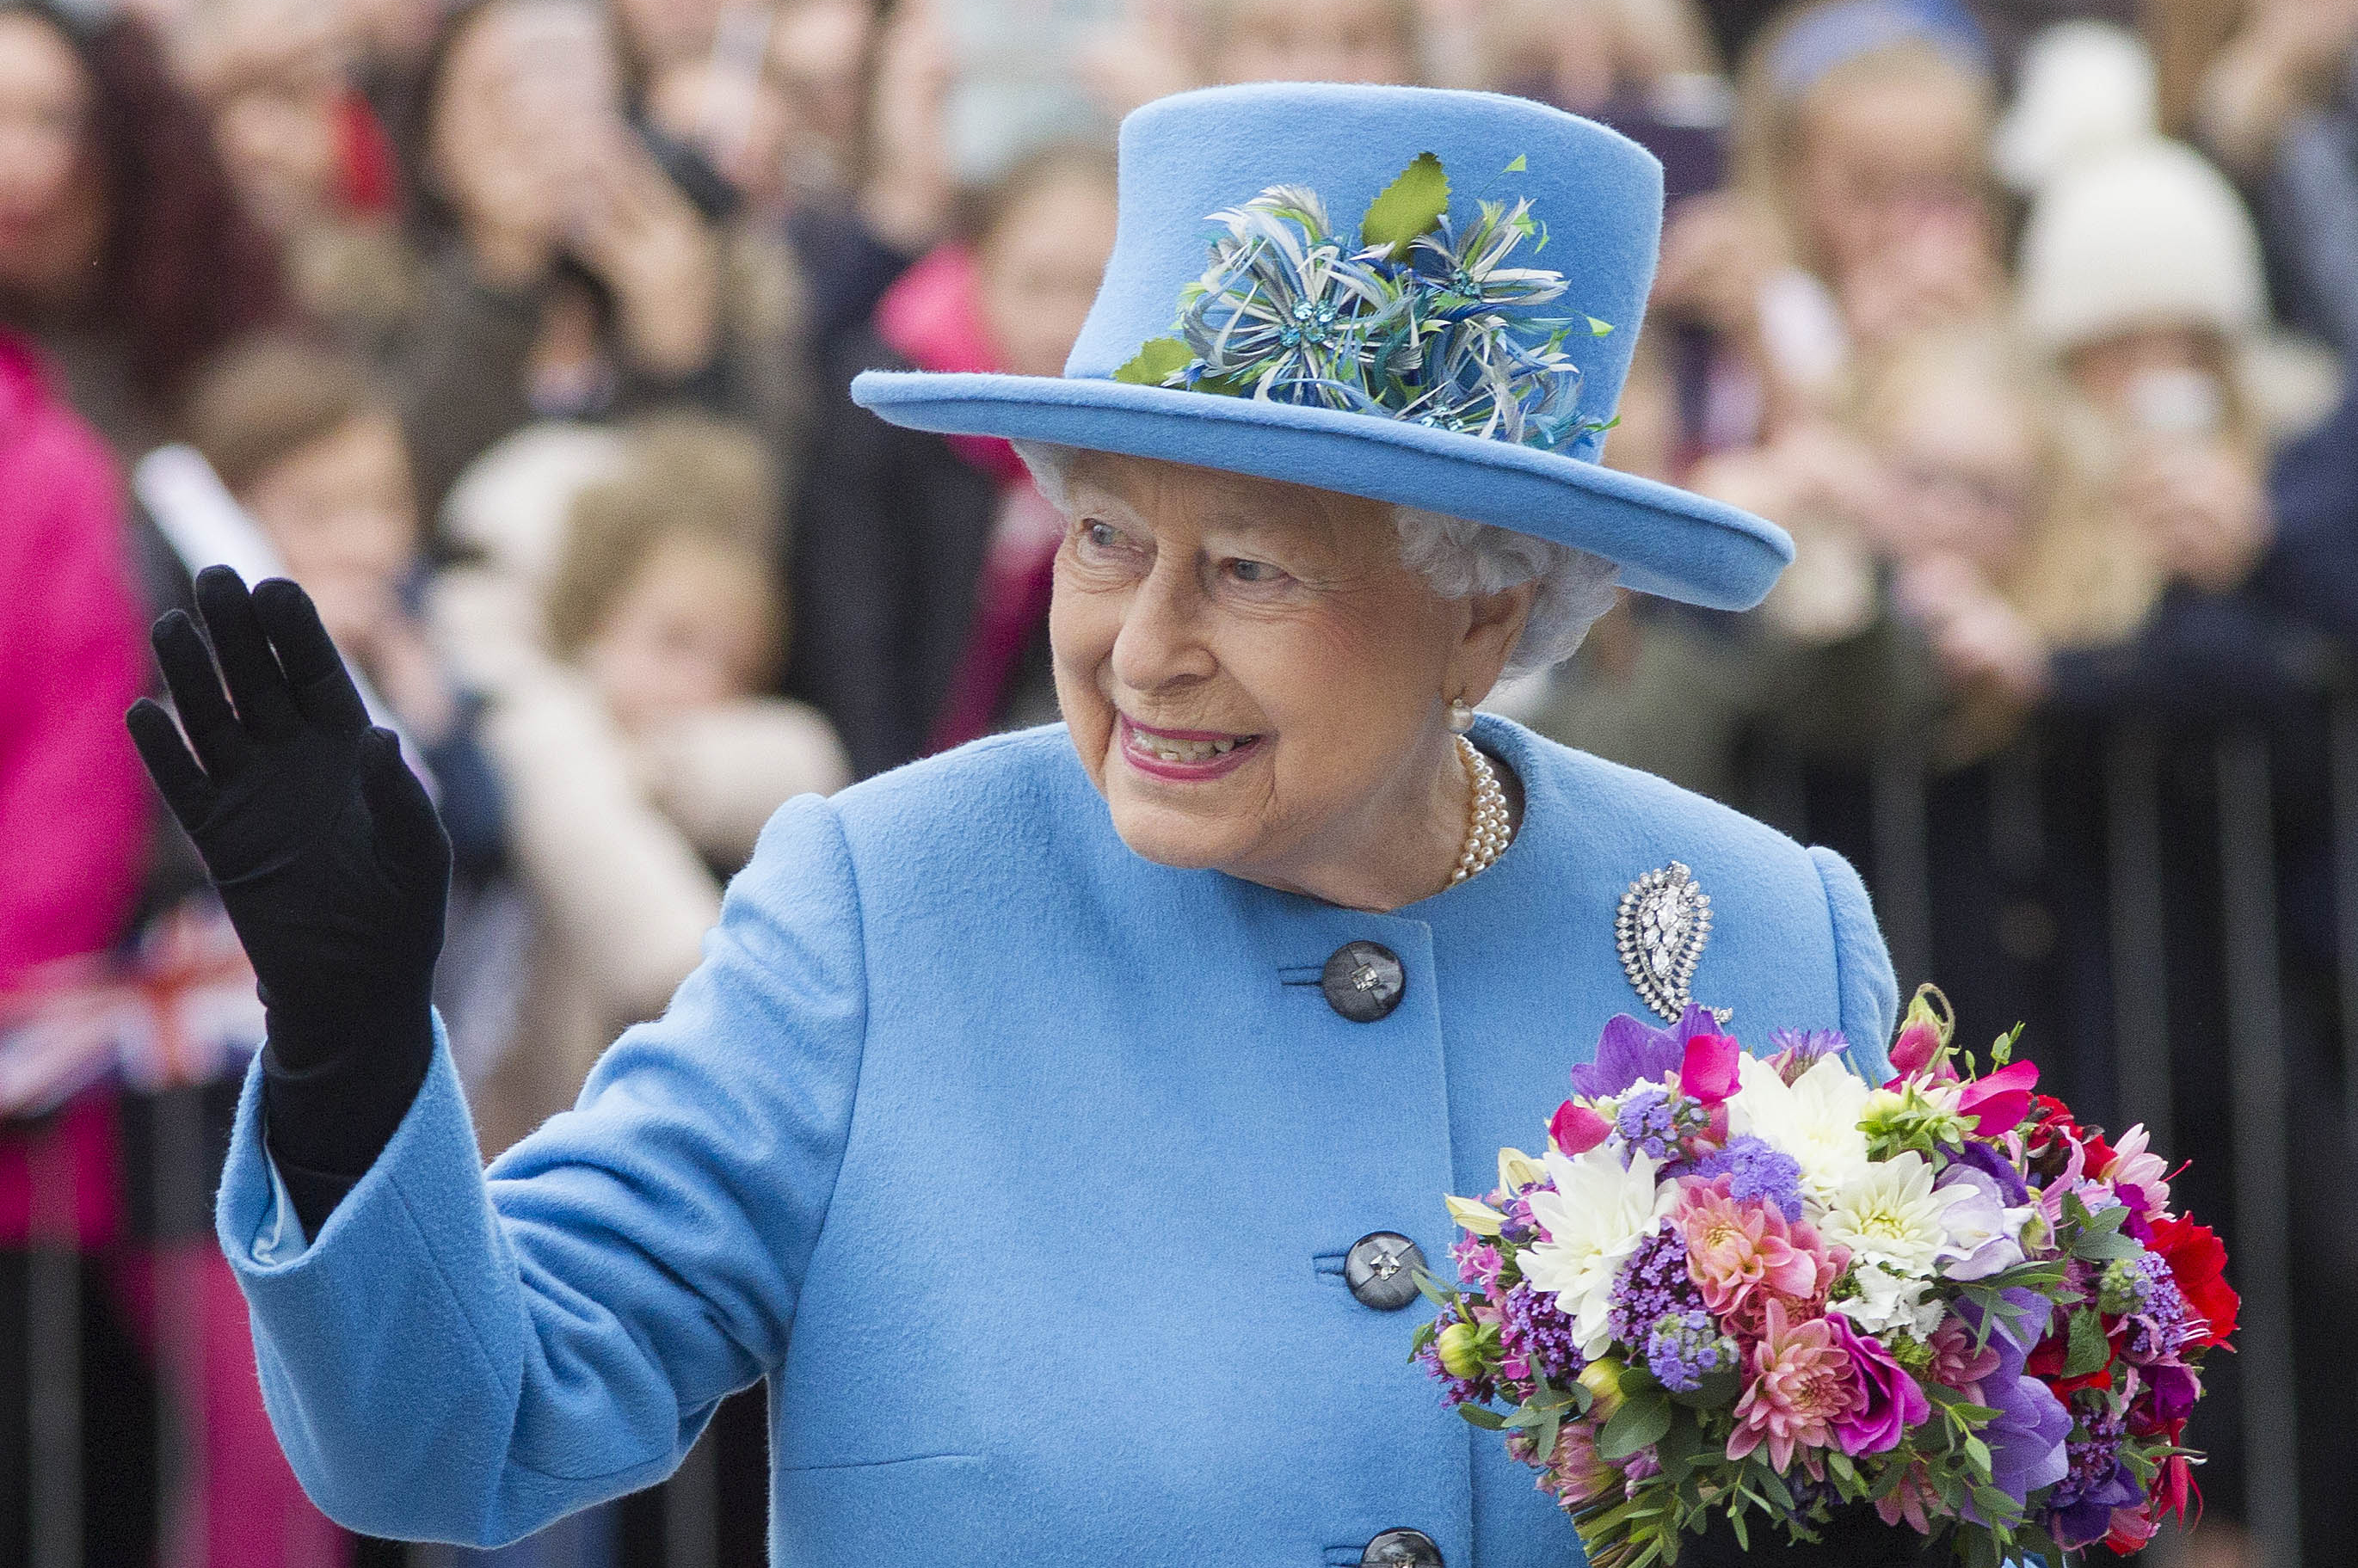 The Queen just surprised a four-year-old boy on his birthday